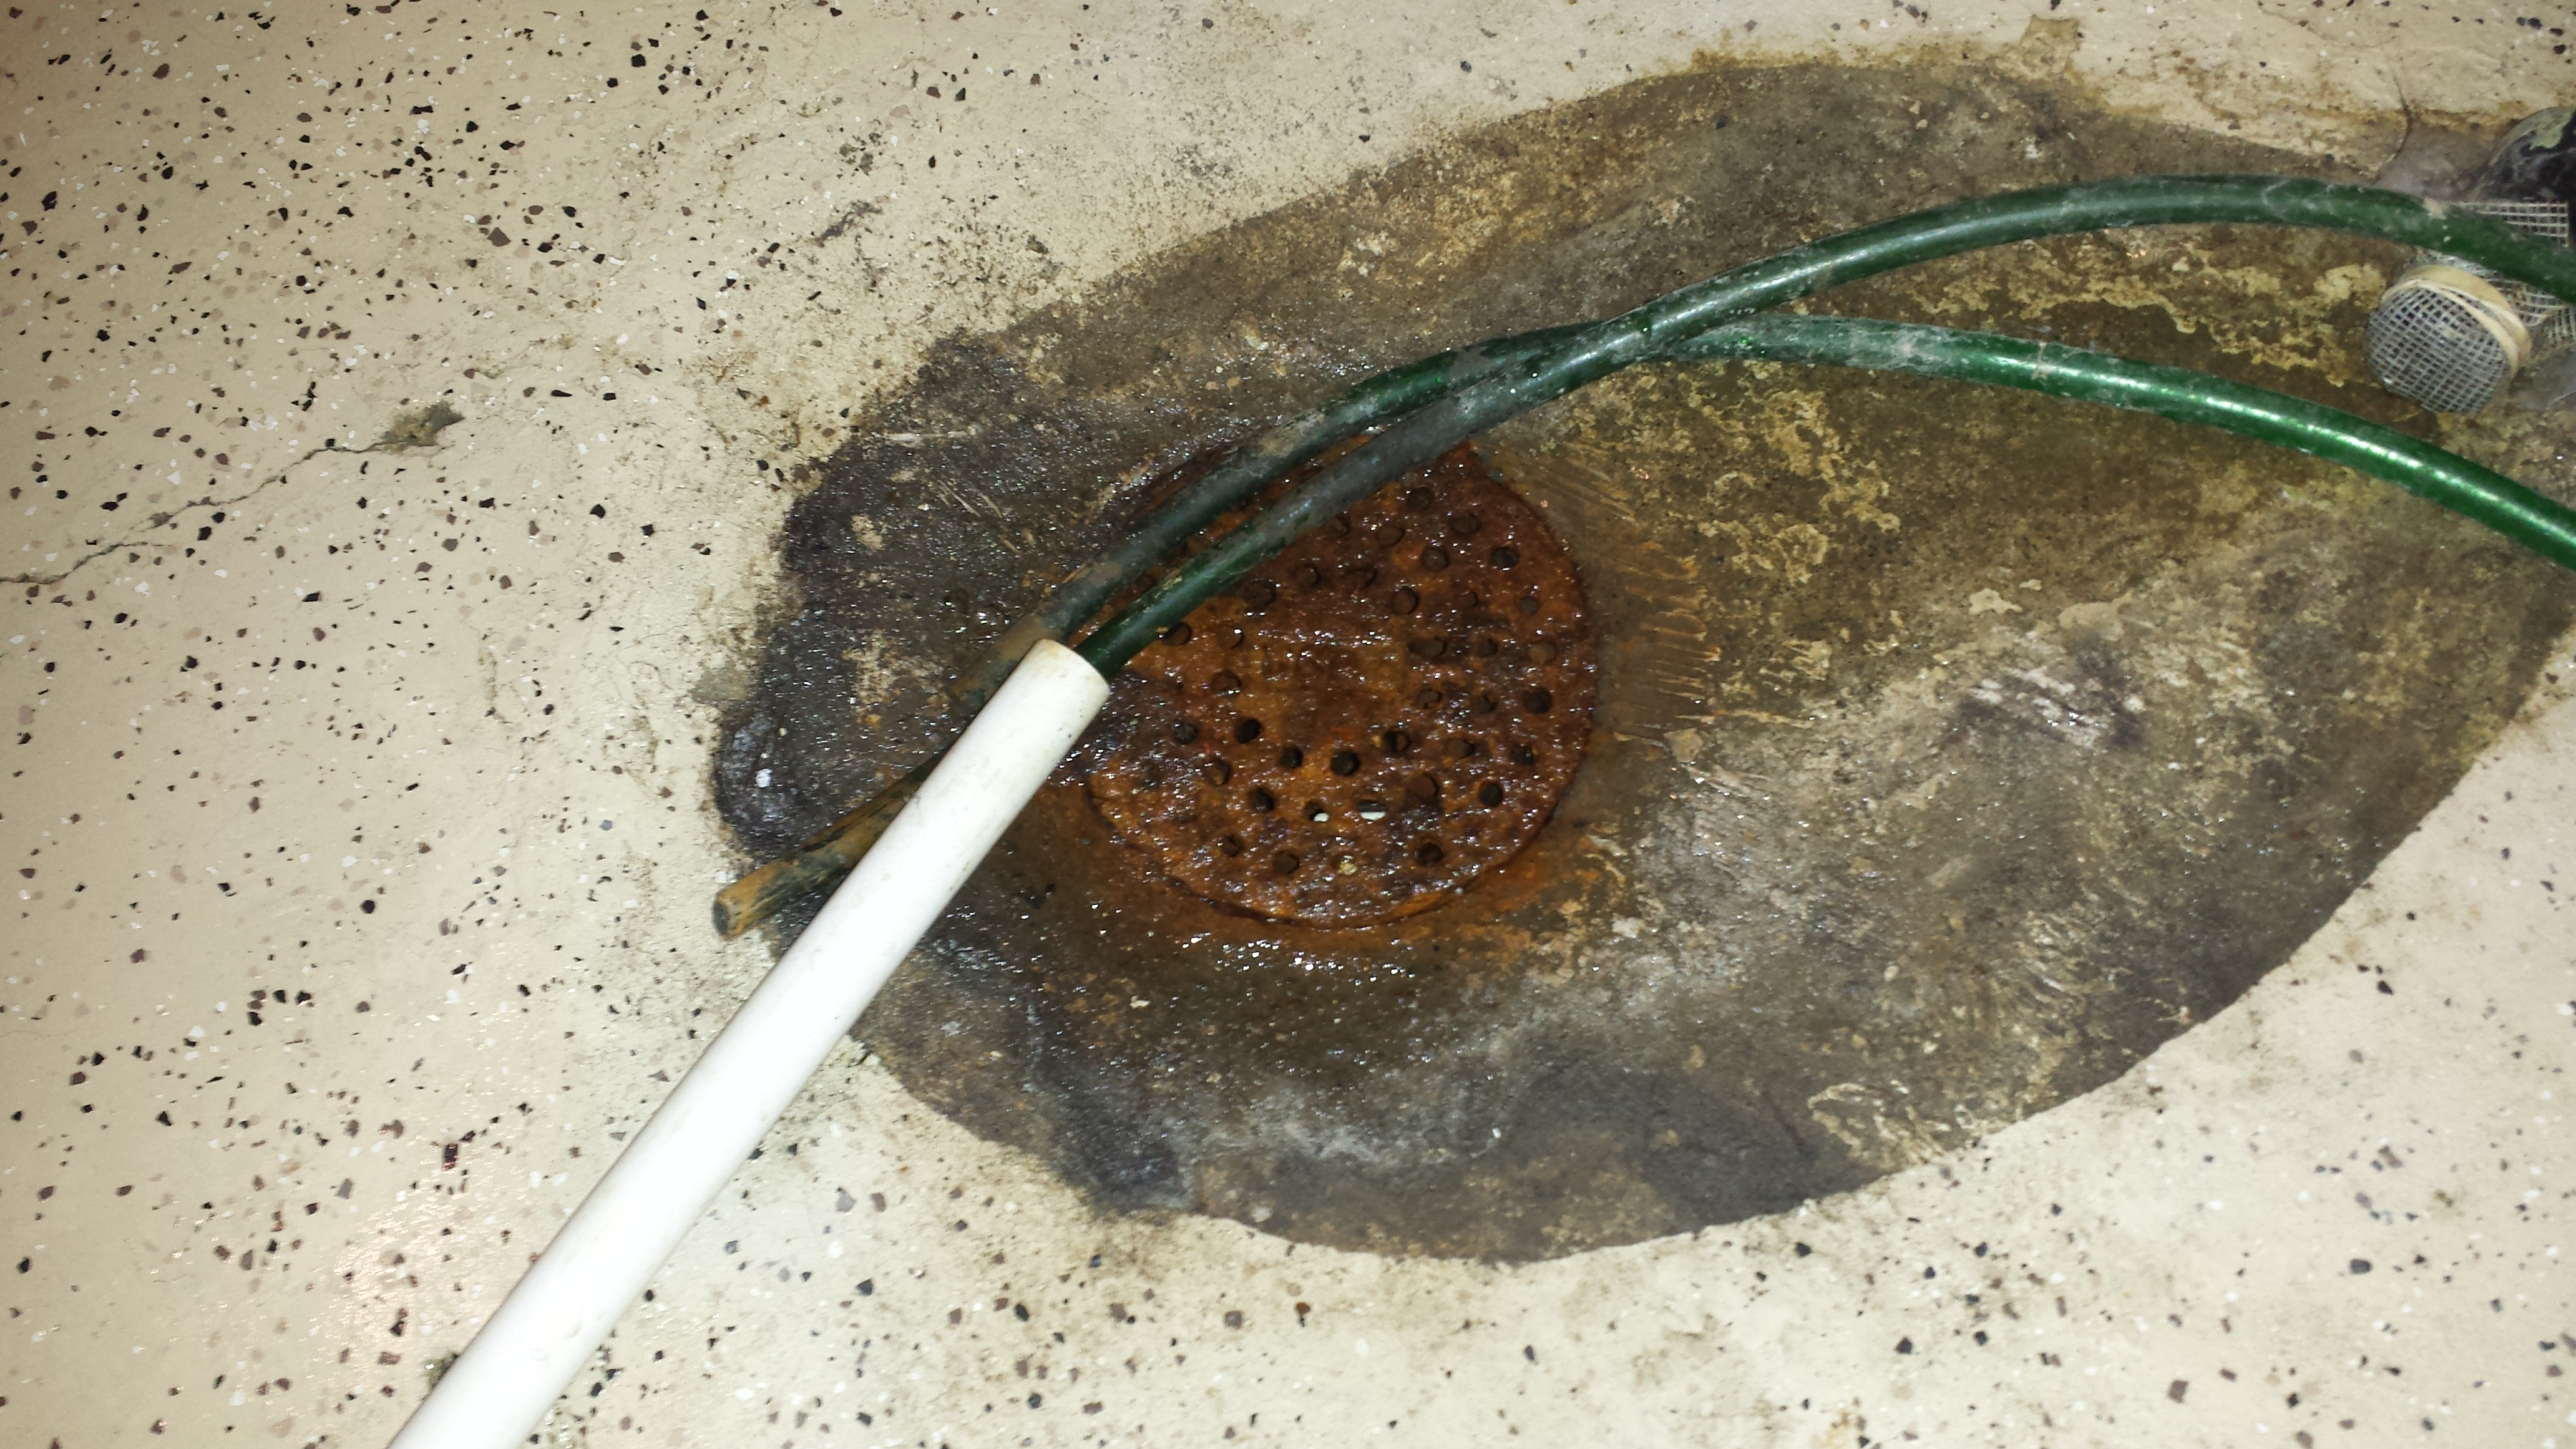 minneapolis drain cleaning clogged drain kens sewer service